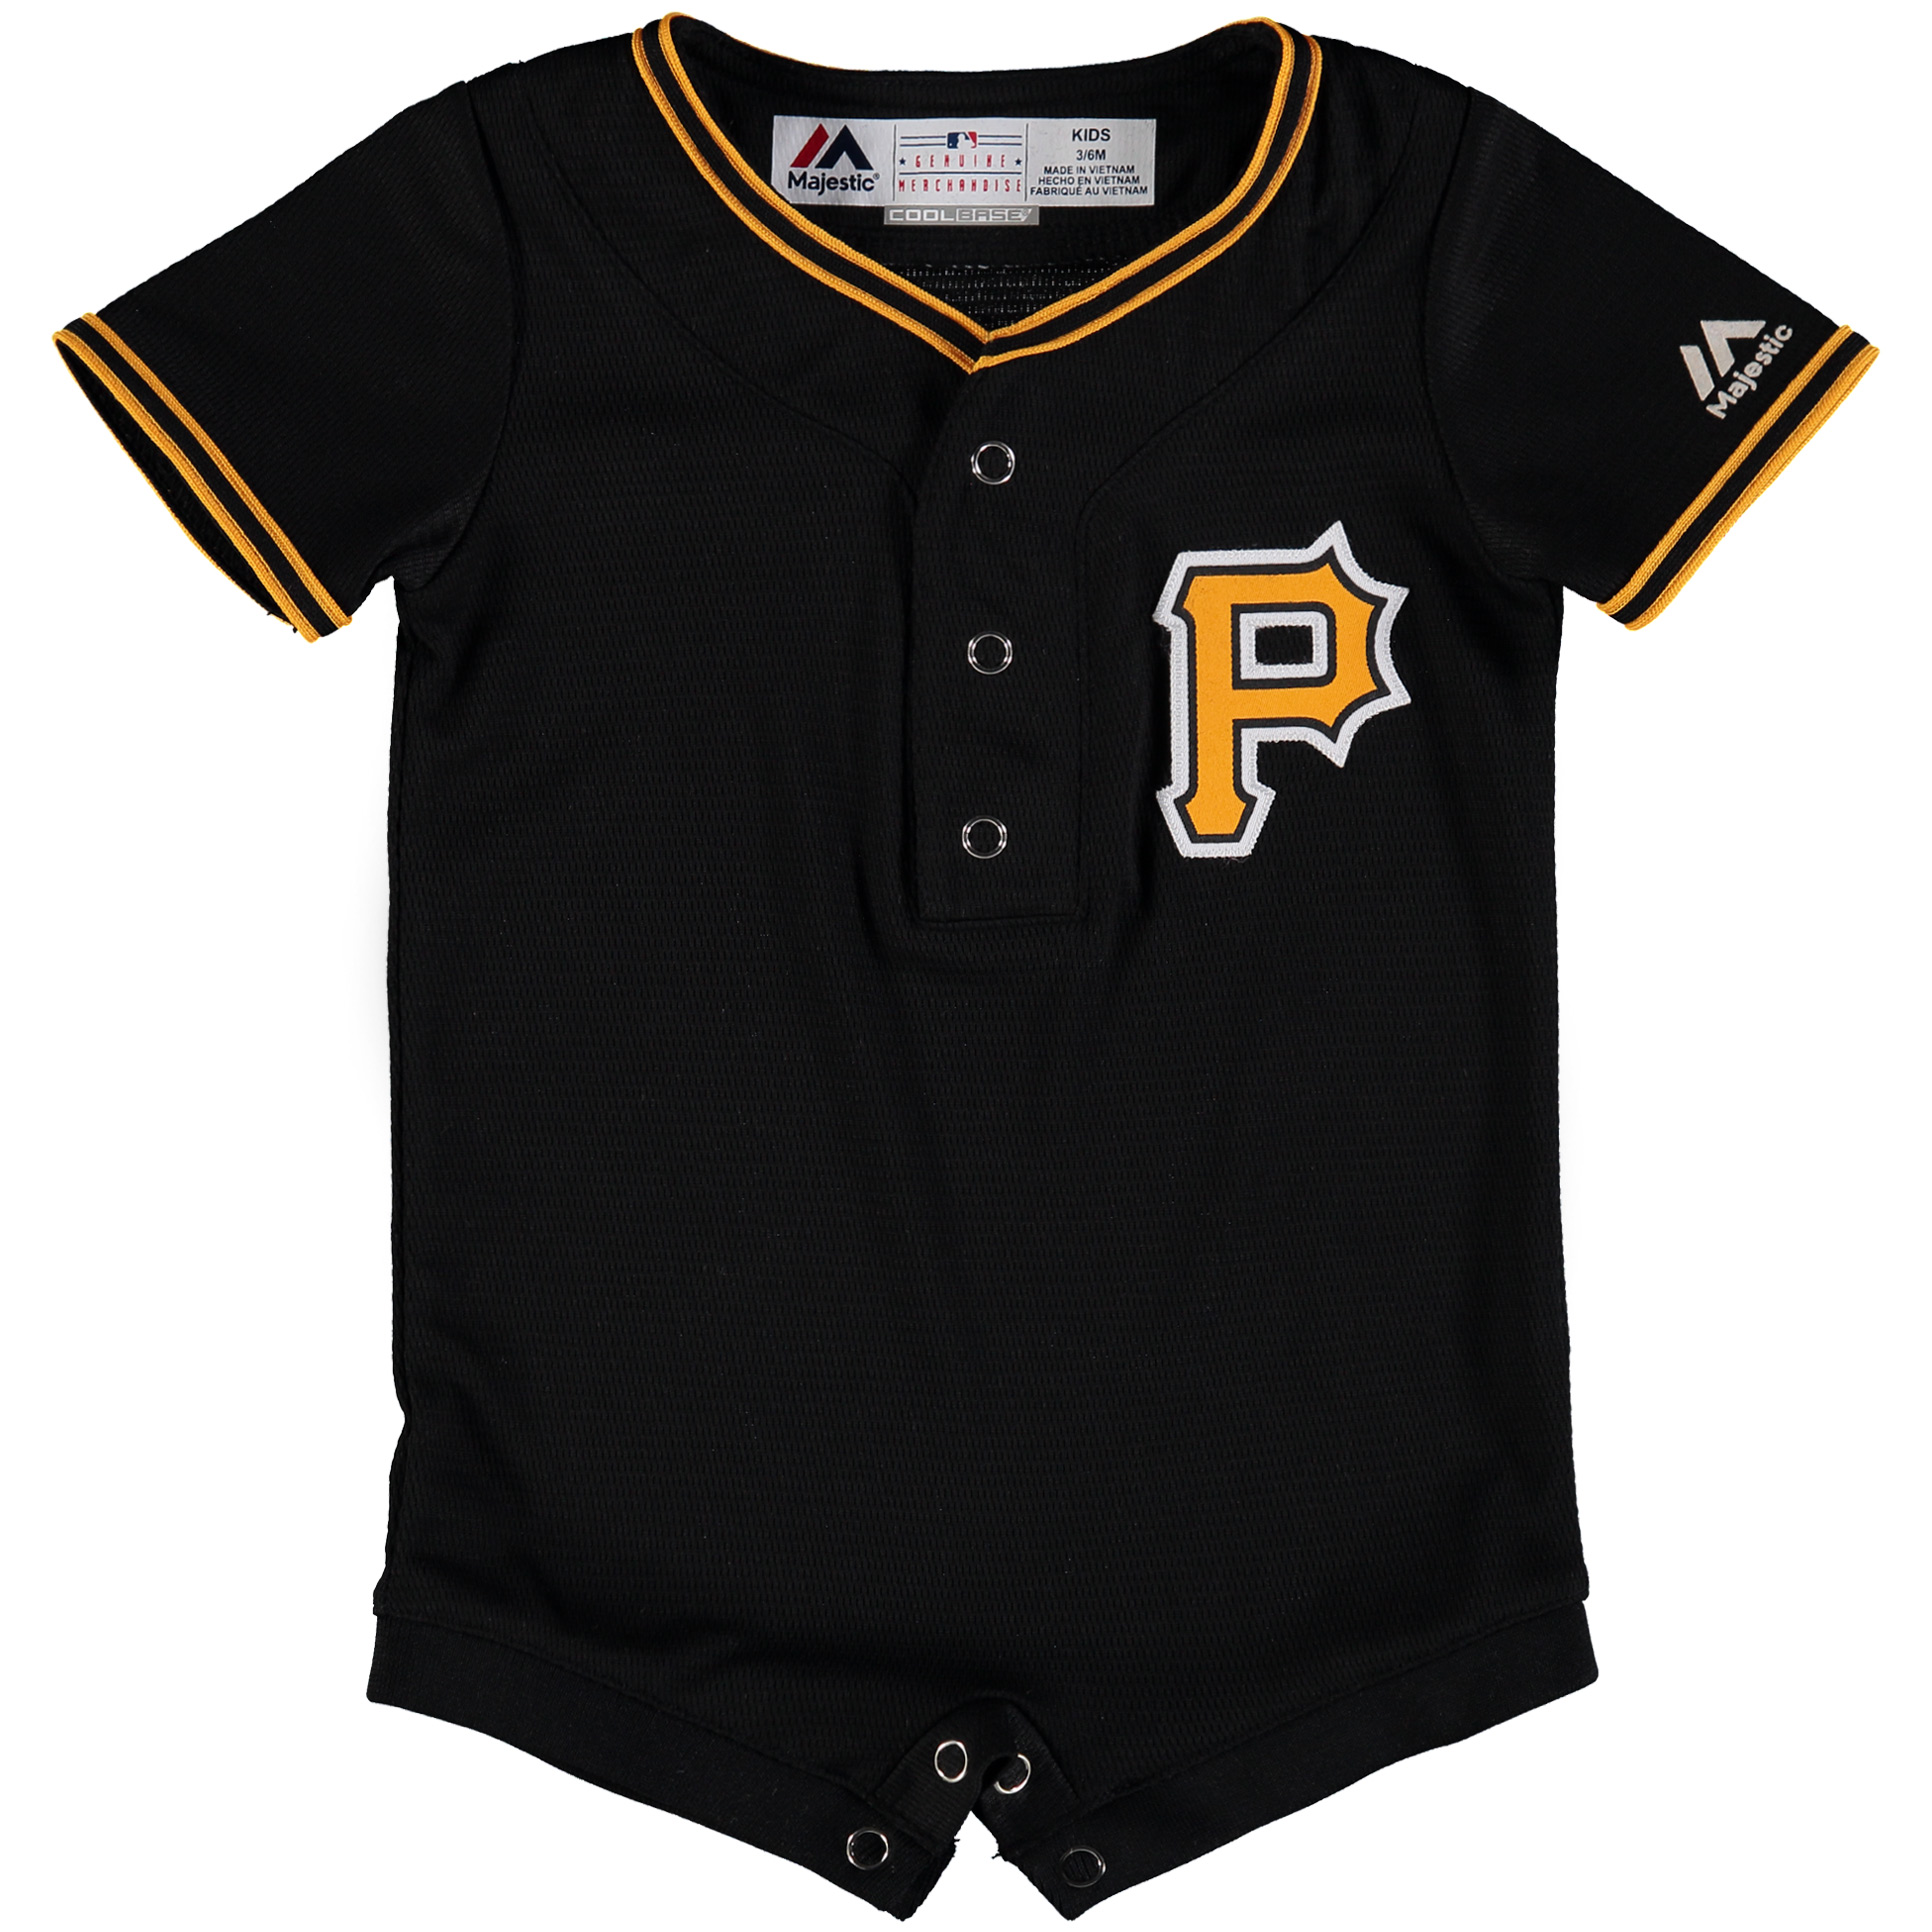 Pittsburgh Pirates Majestic Newborn & Infant Alternate Cool Base Romper Jersey Black by Outerstuff